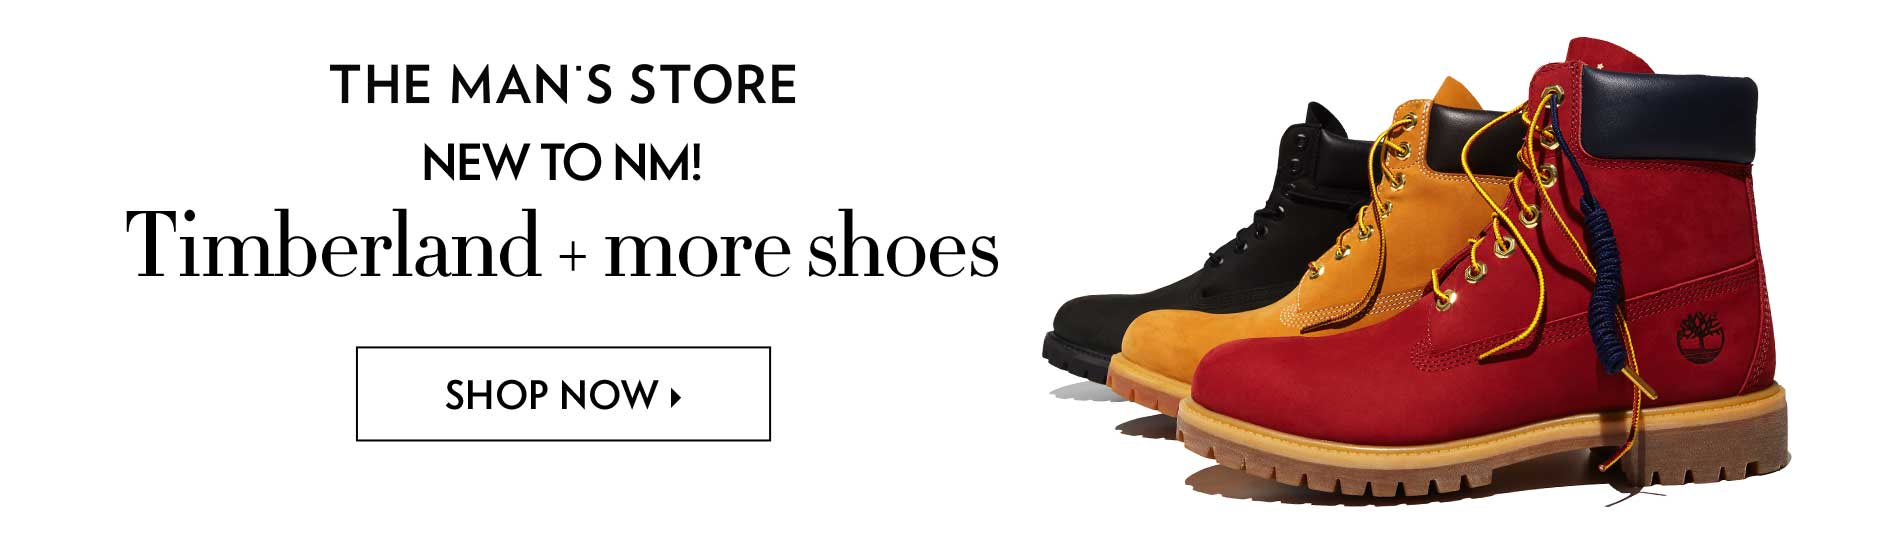 The Man's Store: New To NM! - Timberland + more shoes